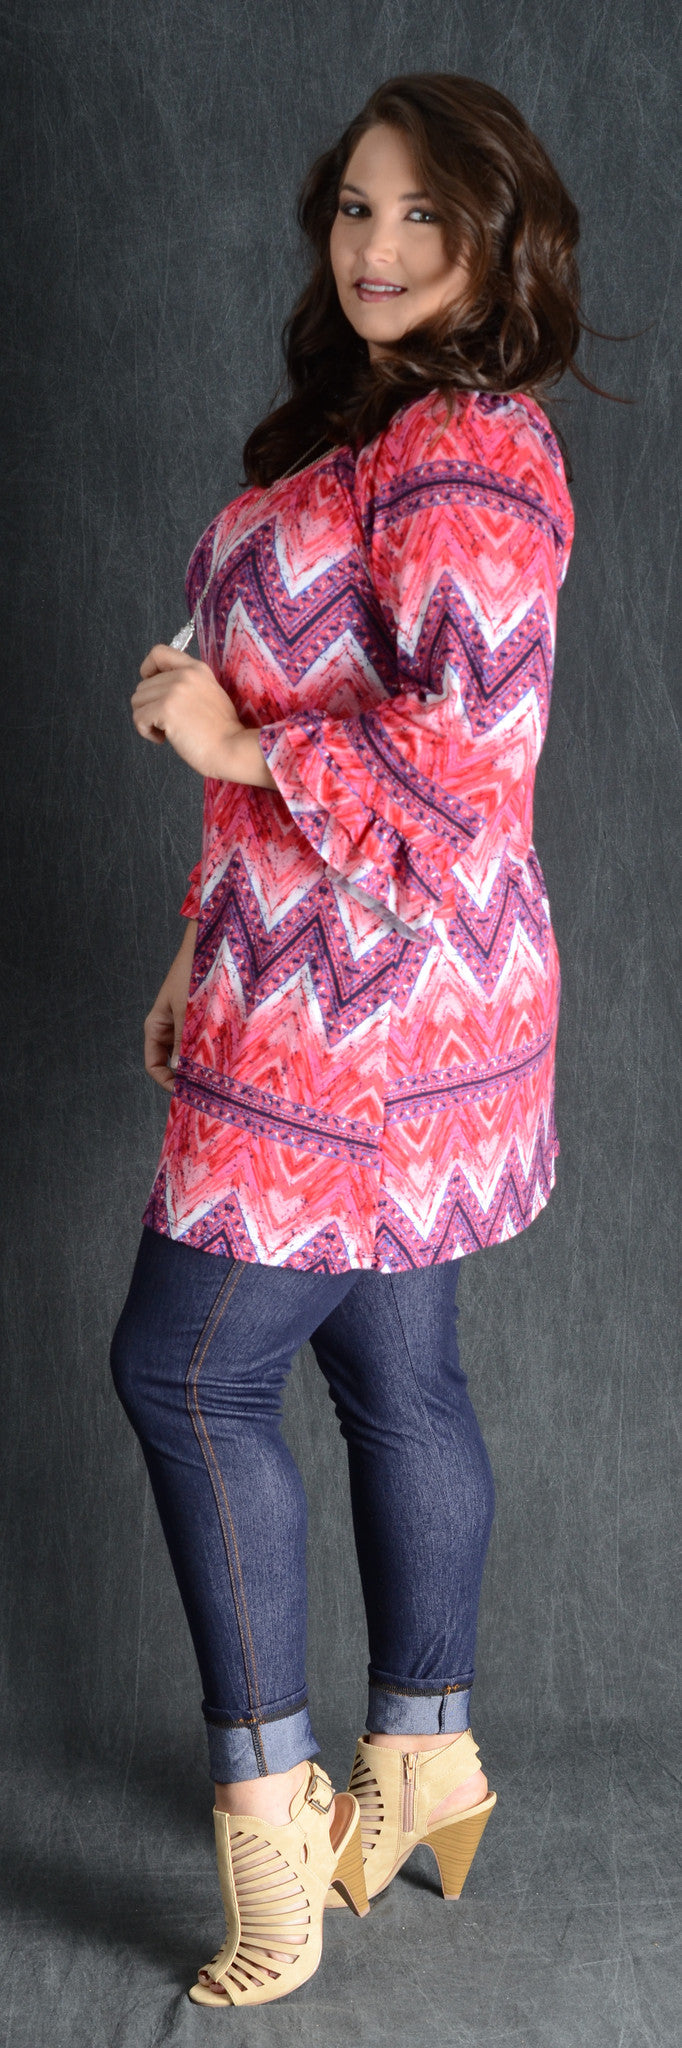 Fuchsia Chevron Pattern Top - www.mycurvystore.com - Curvy Boutique - Plus Size